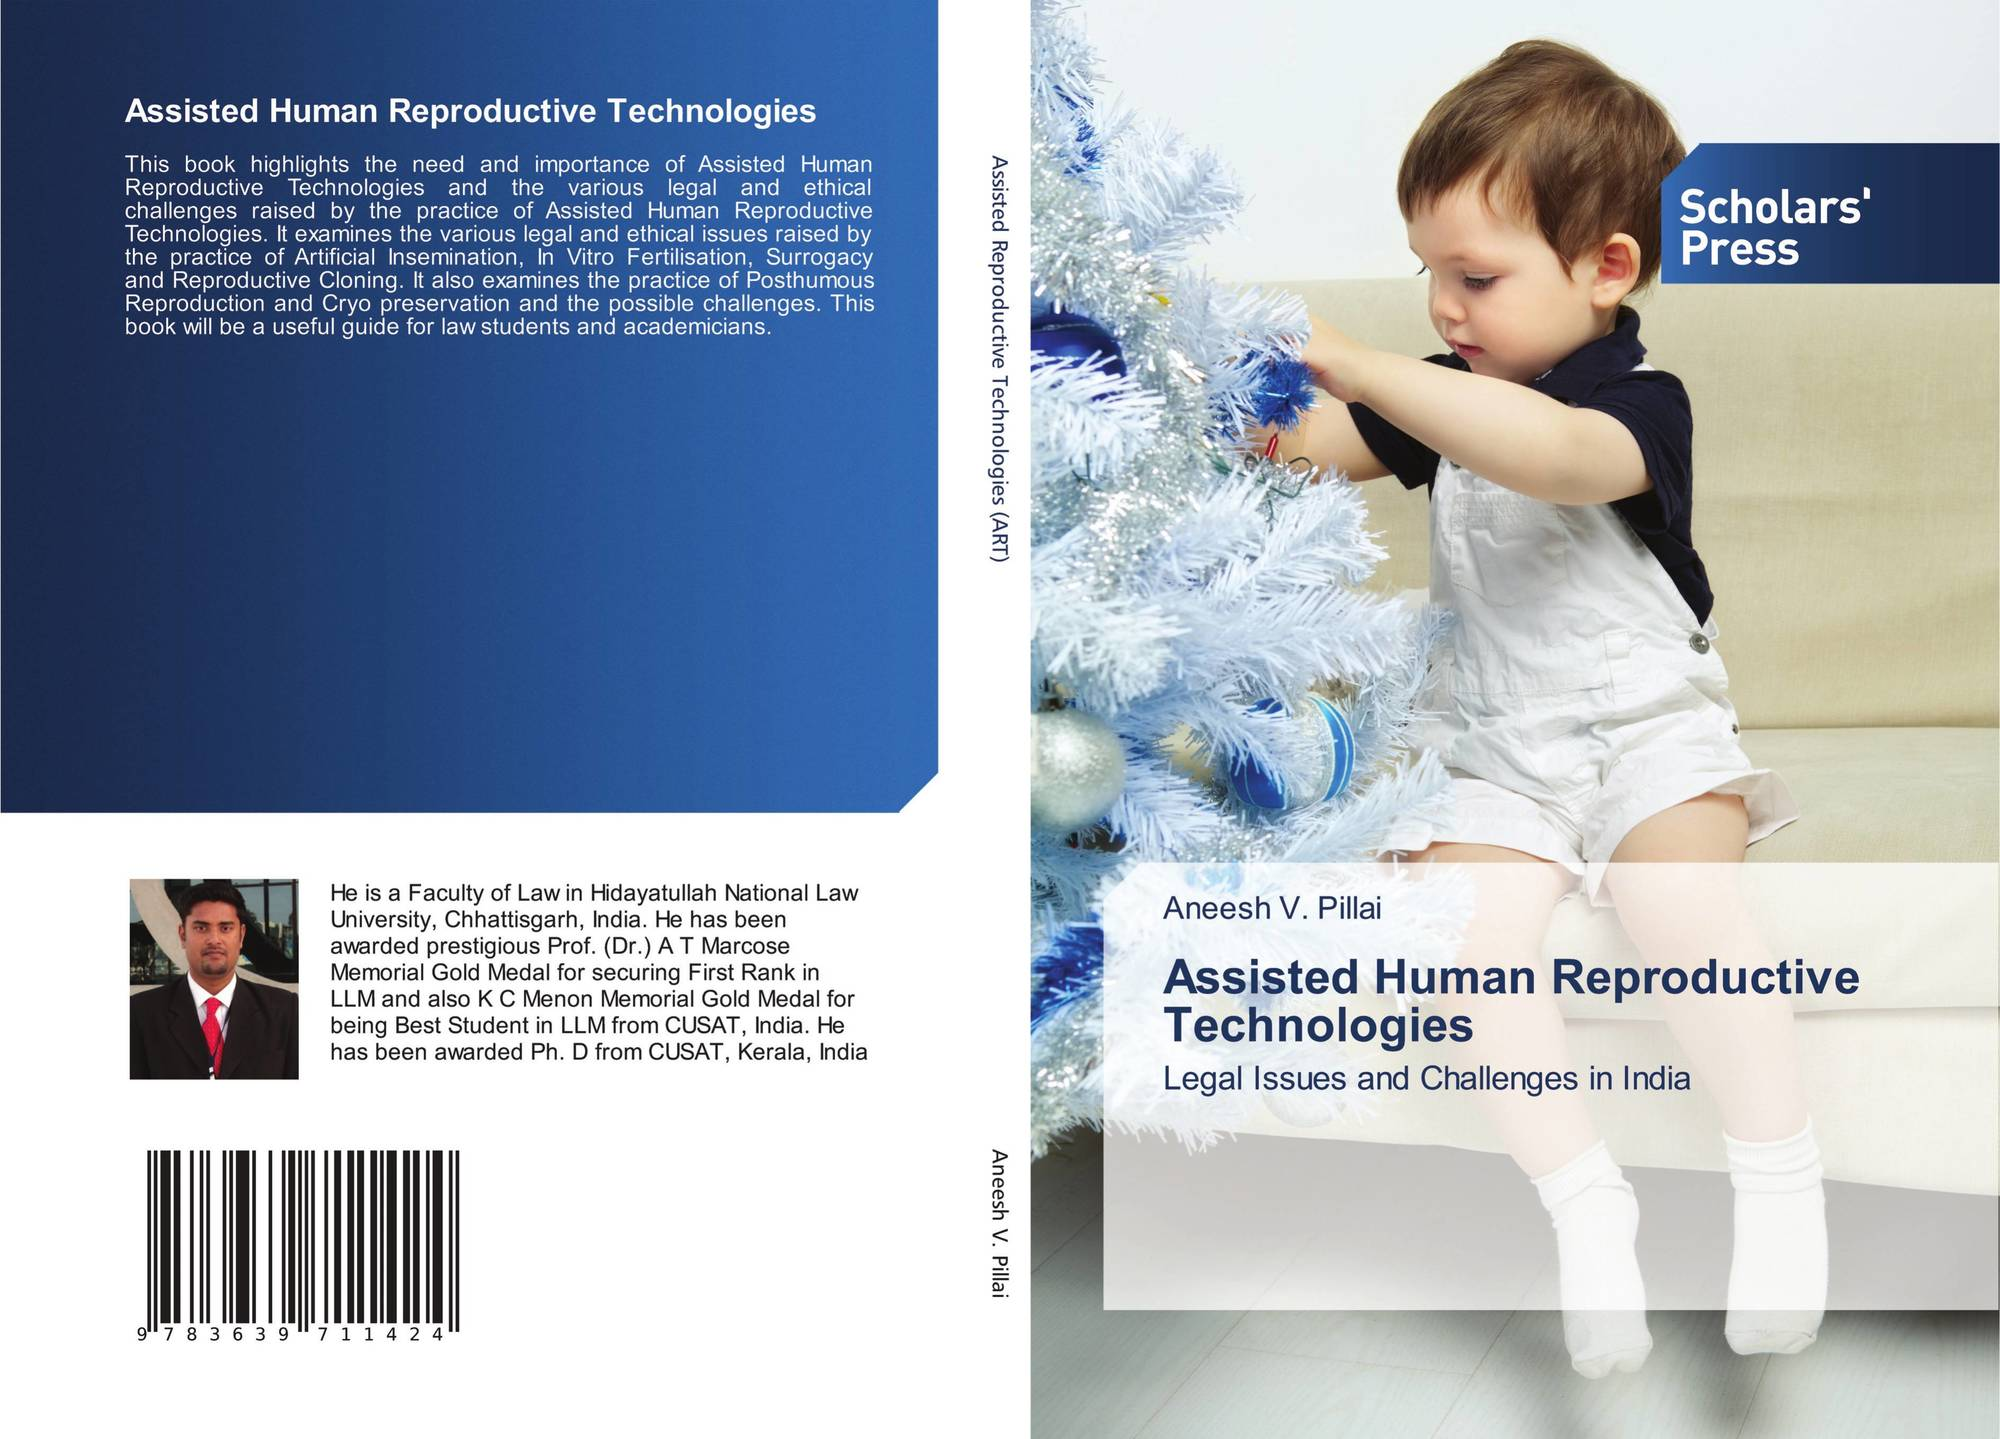 Bookcover of Assisted Human Reproductive Technologies. 9783639711424